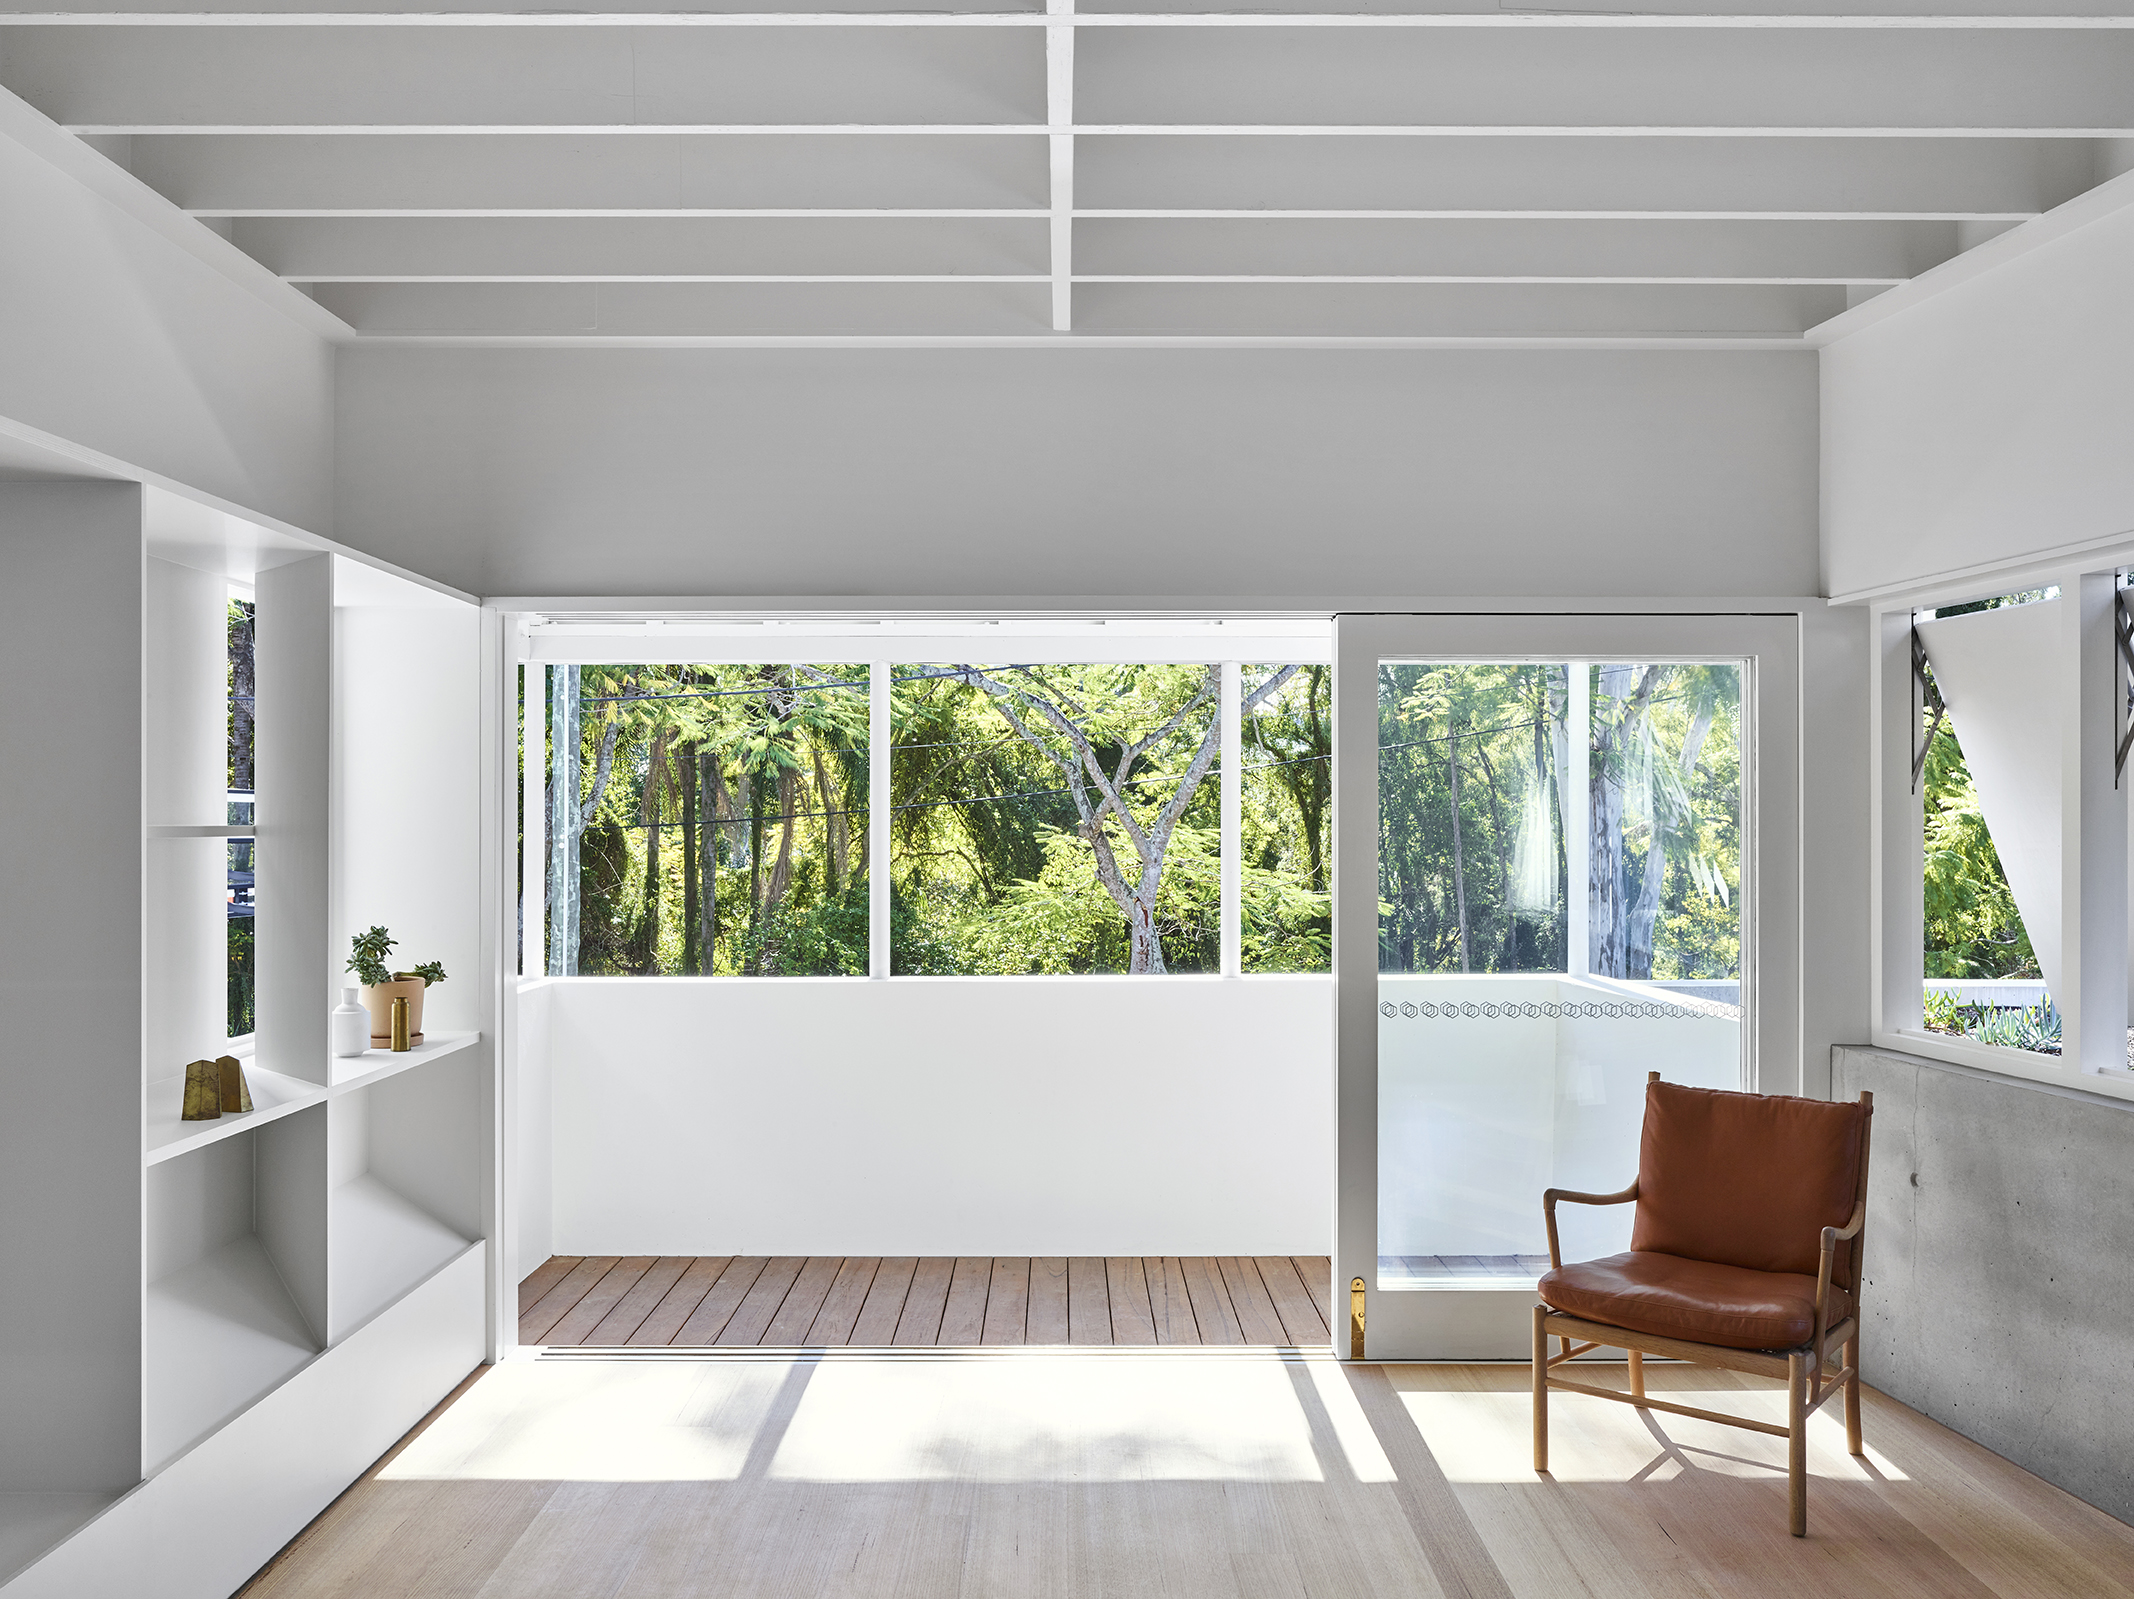 O+Lineburg___Goldieslie_Rd_House60694©To